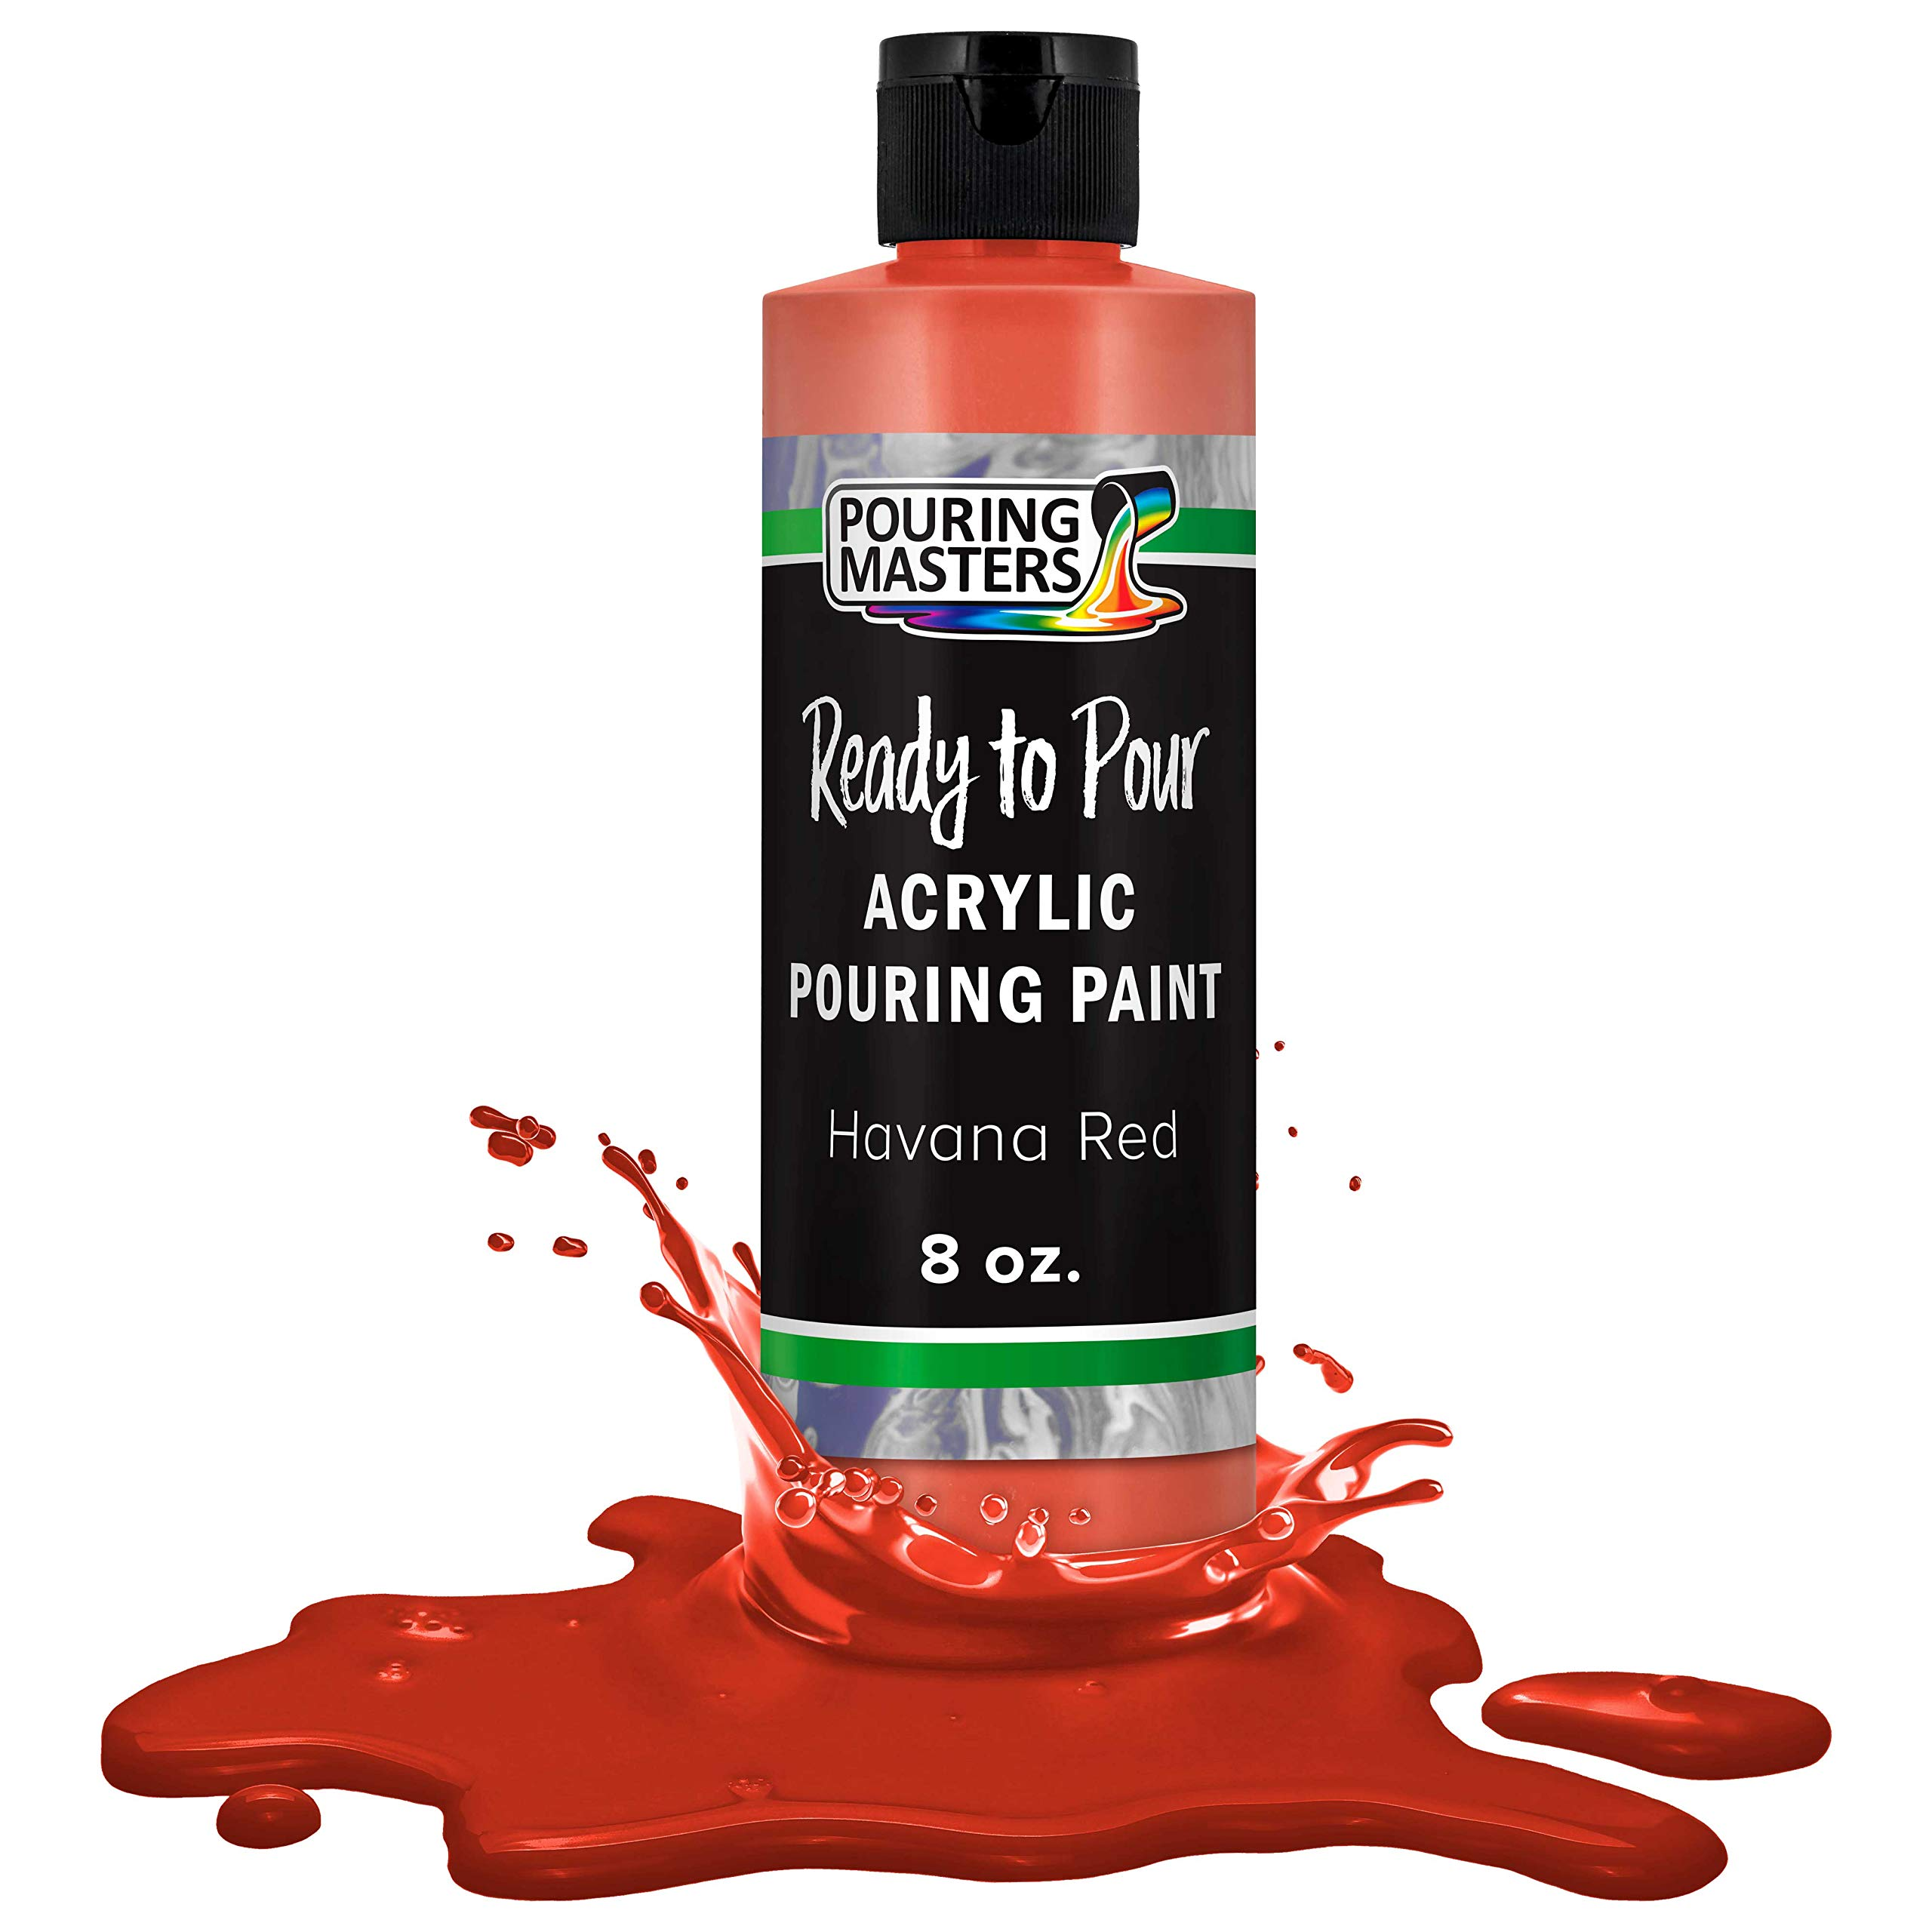 Pouring Masters Havana Red Acrylic Ready to Pour Pouring Paint – Premium 8-Ounce Pre-Mixed Water-Based - for Canvas, Wood, Paper, Crafts, Tile, Rocks and More